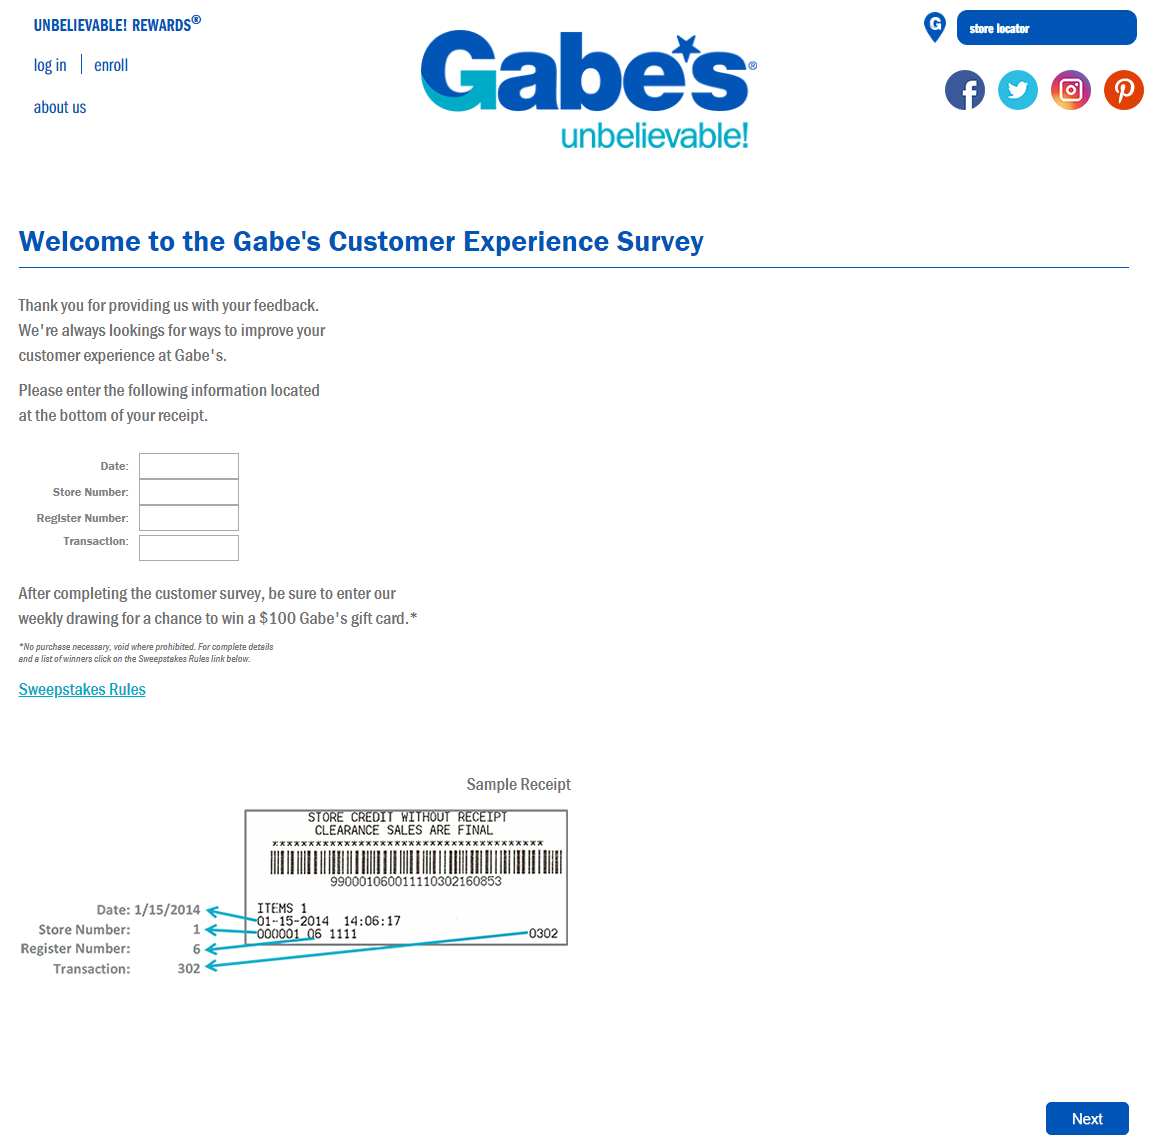 Join-The-Gabe's-Survey-And-Earn-100-Gift-Card